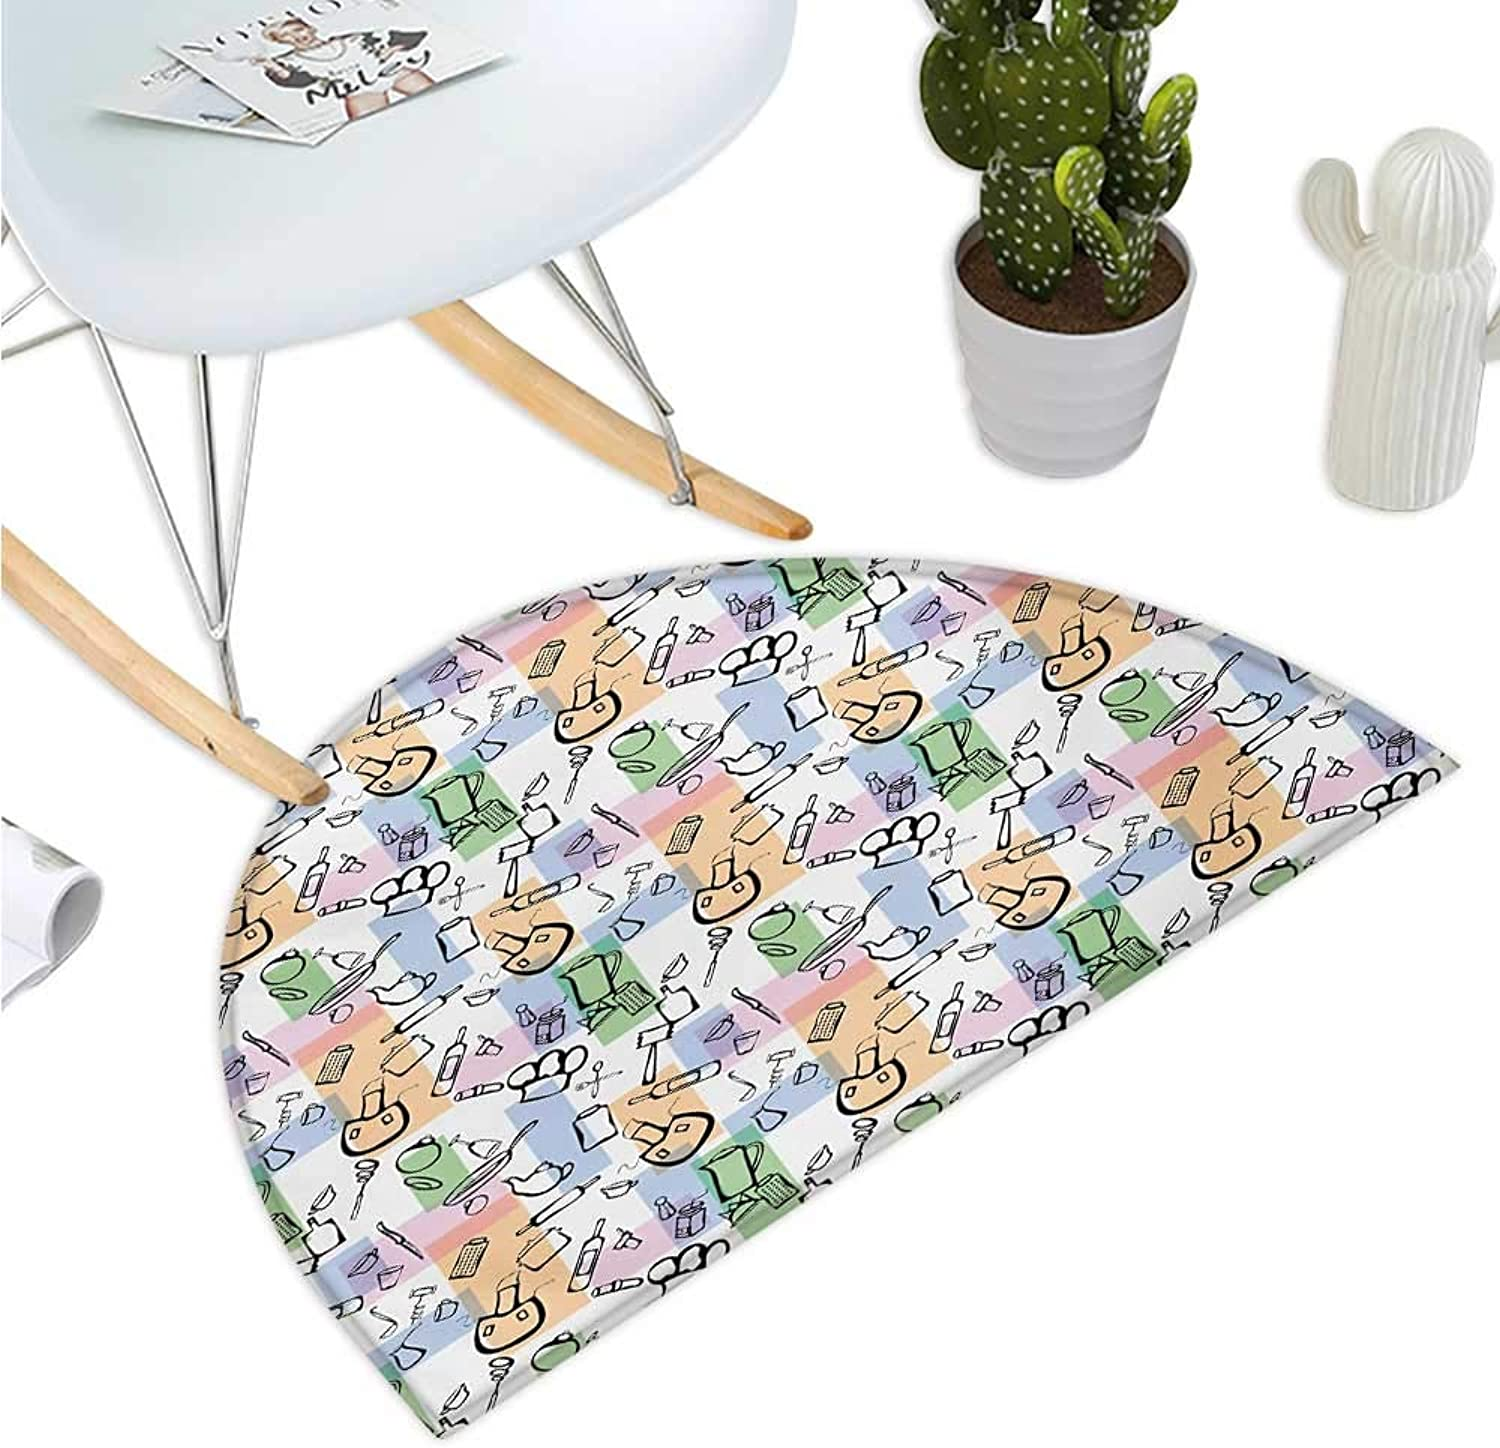 Abstract Semicircular Cushion Kitchen Stuff and colord Rectangles Cuisine Chefs Table Artistic Illustration Entry Door Mat H 39.3  xD 59  Multicolor